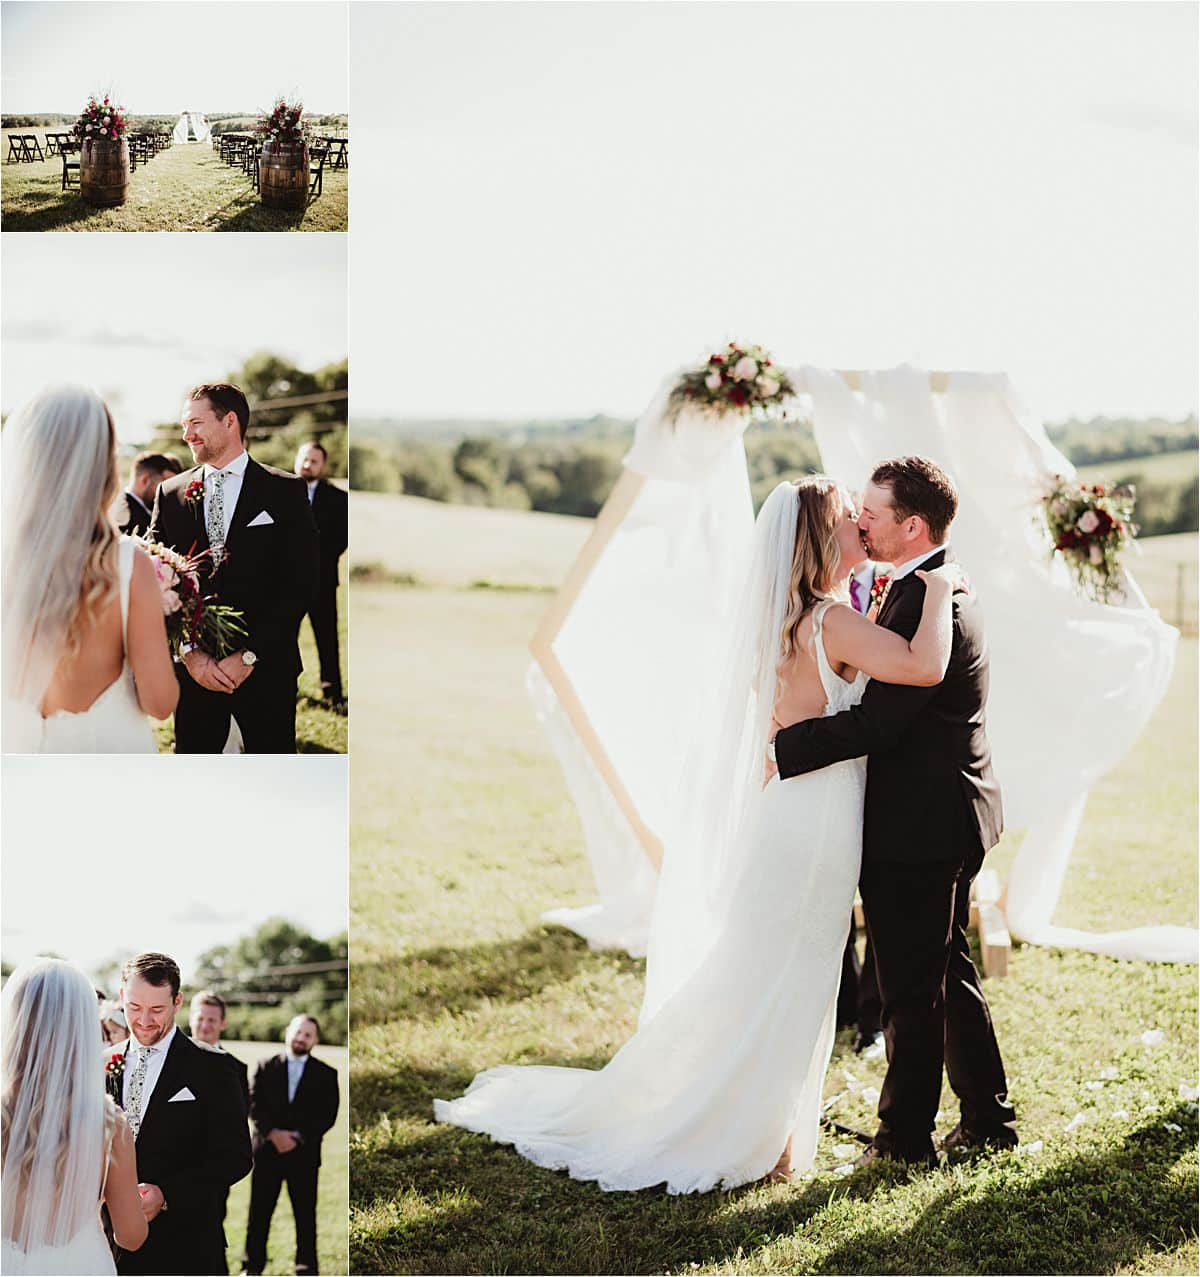 Intimate Outdoor Summer Wedding Ceremony